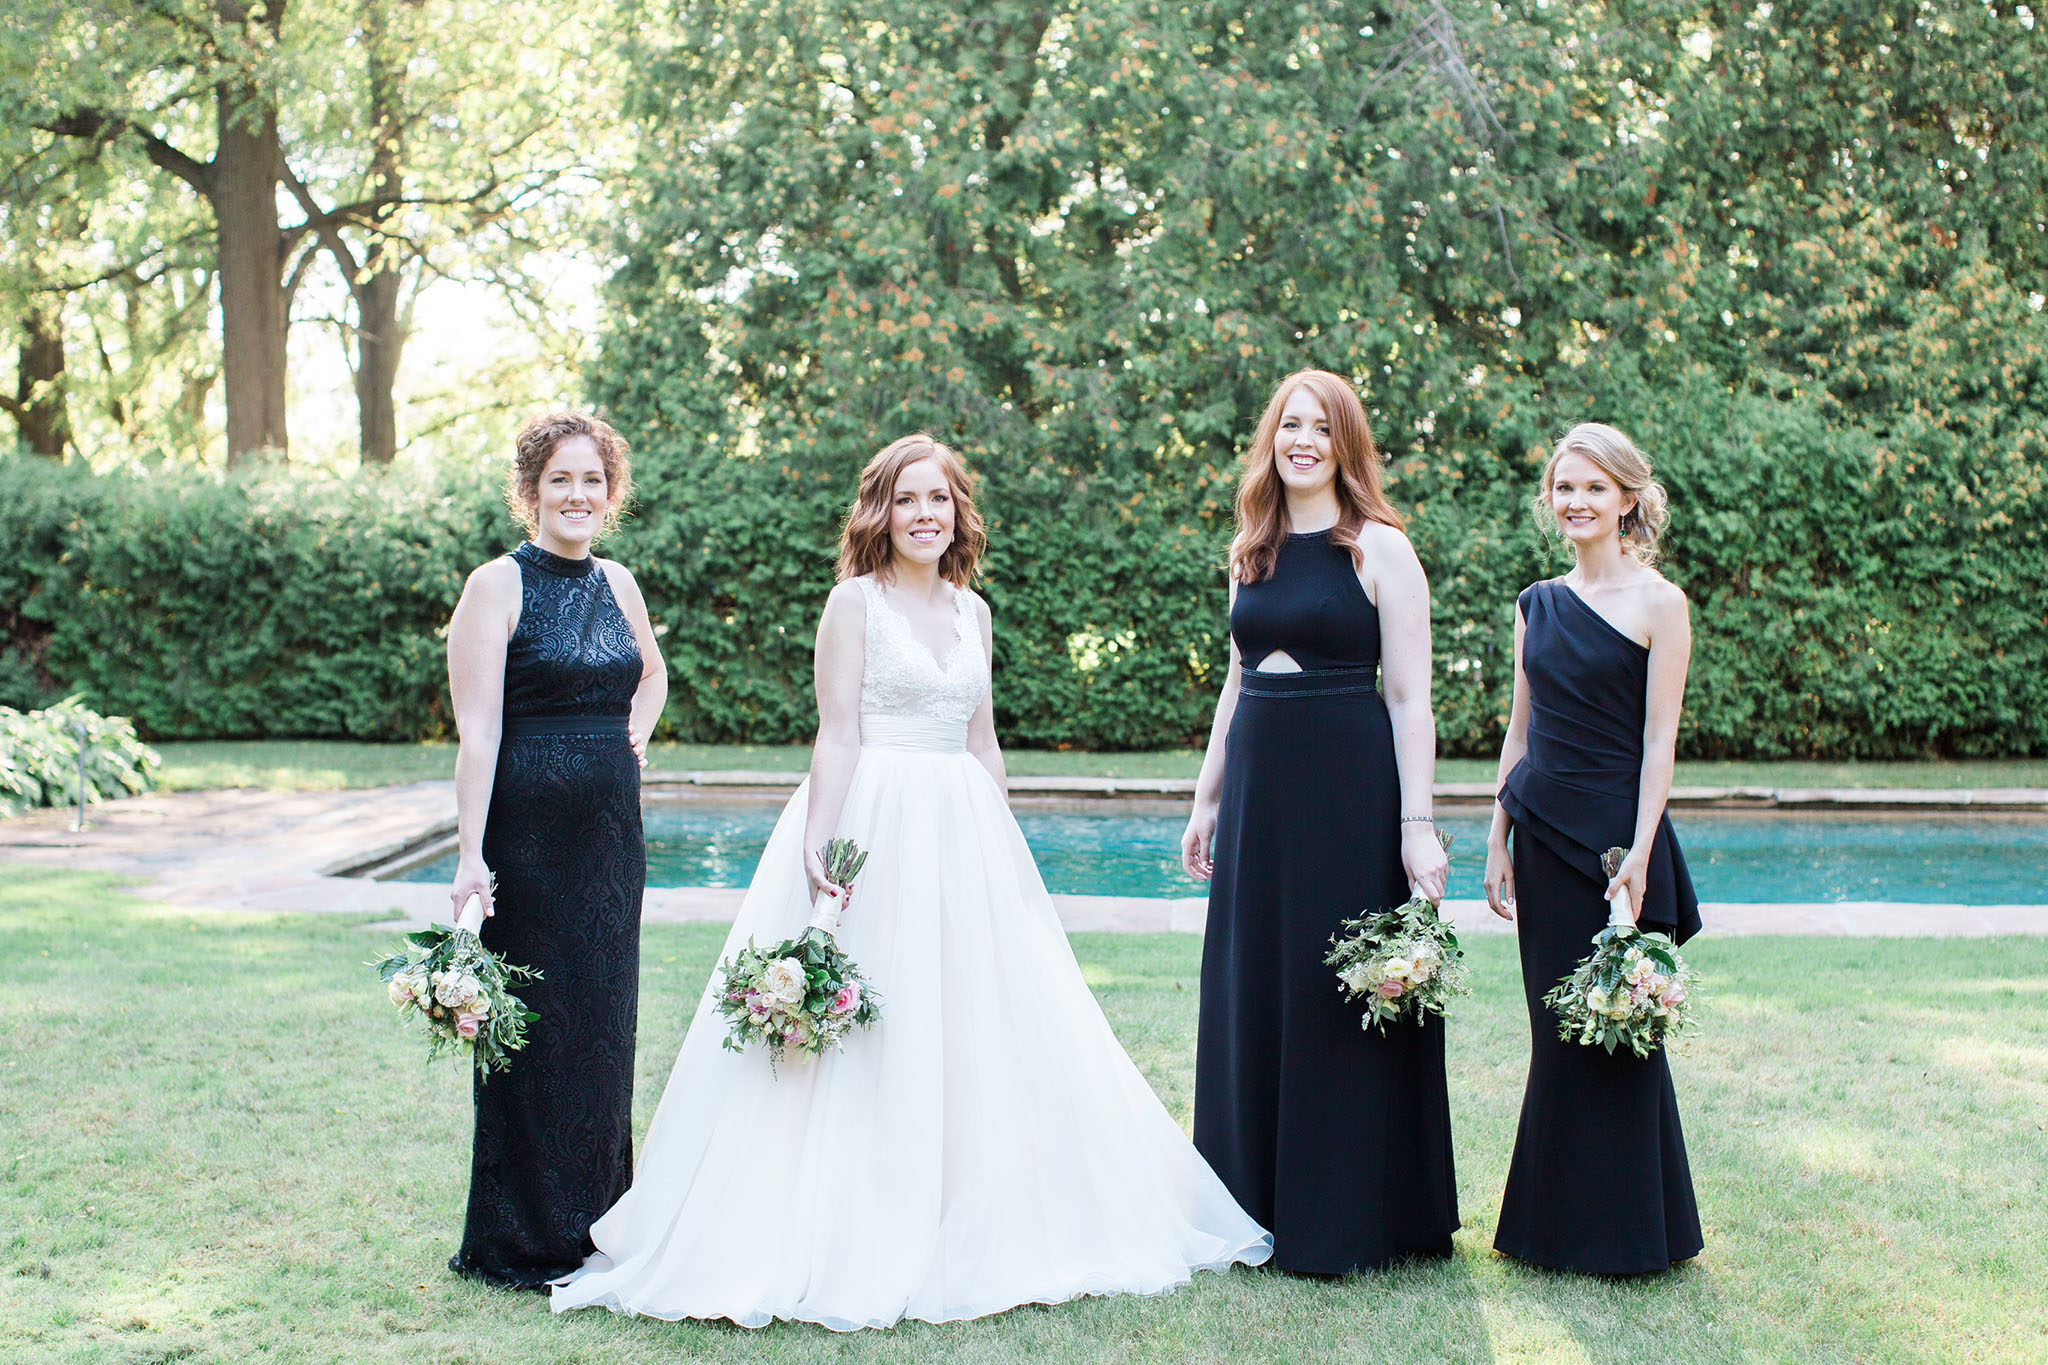 Penryn Park is a beautiful spot to create bridal party photos with elegance and charm